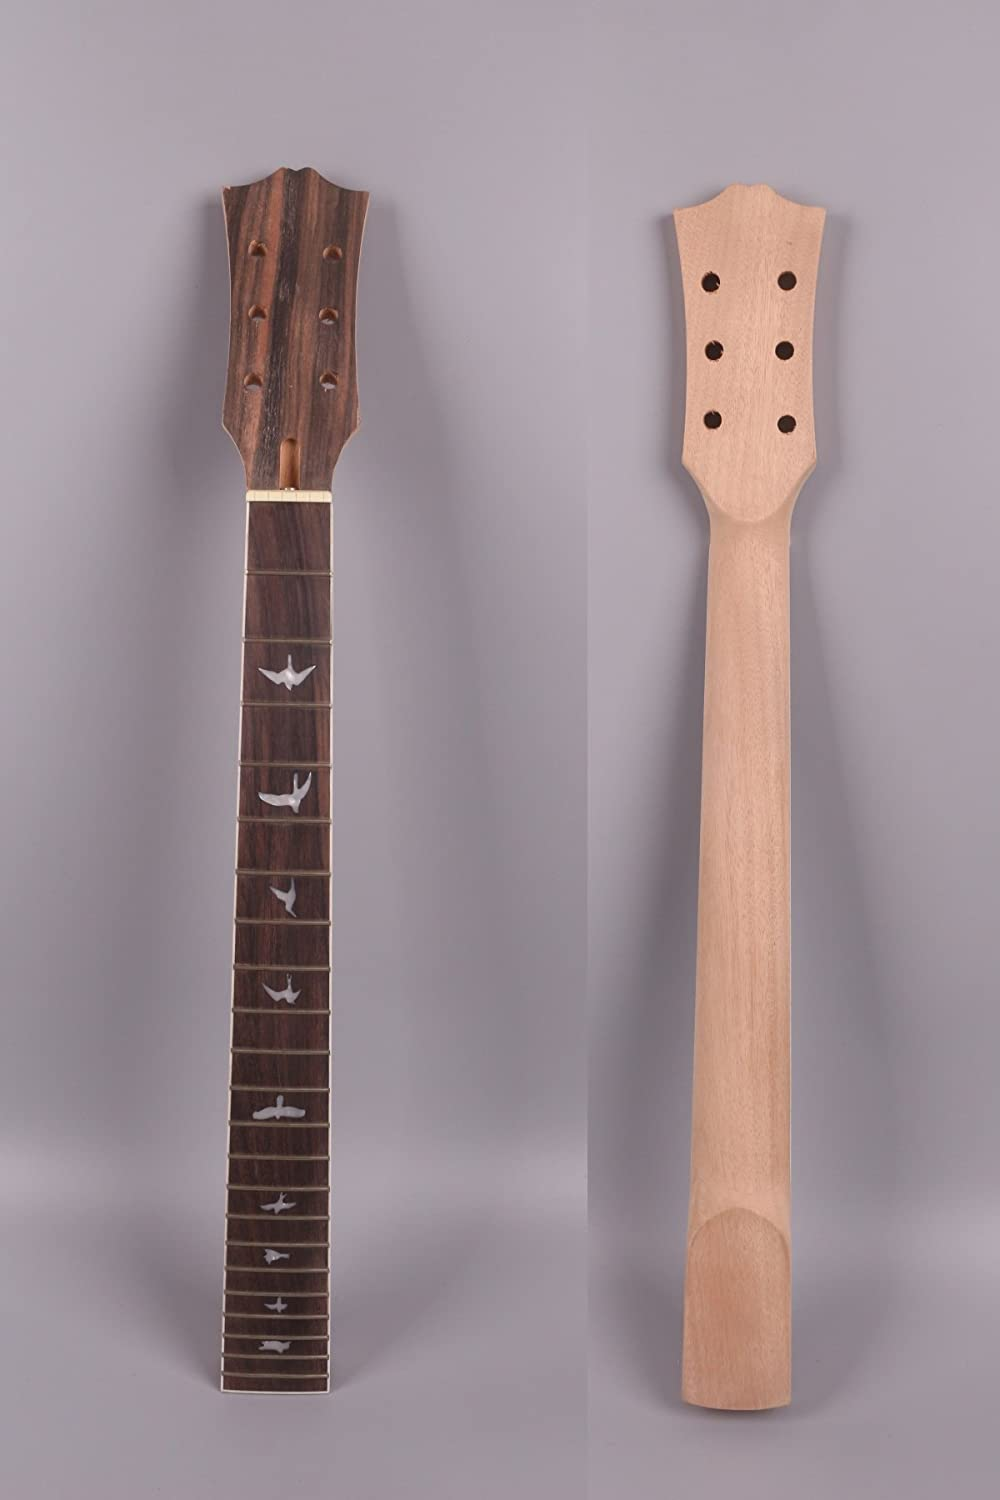 electric guitar neck unfinished 22 fret 24.75 inch Mahogany rosewood Fretboard Bolt LP electric guitar Bird inlay Yinfente 4334371756